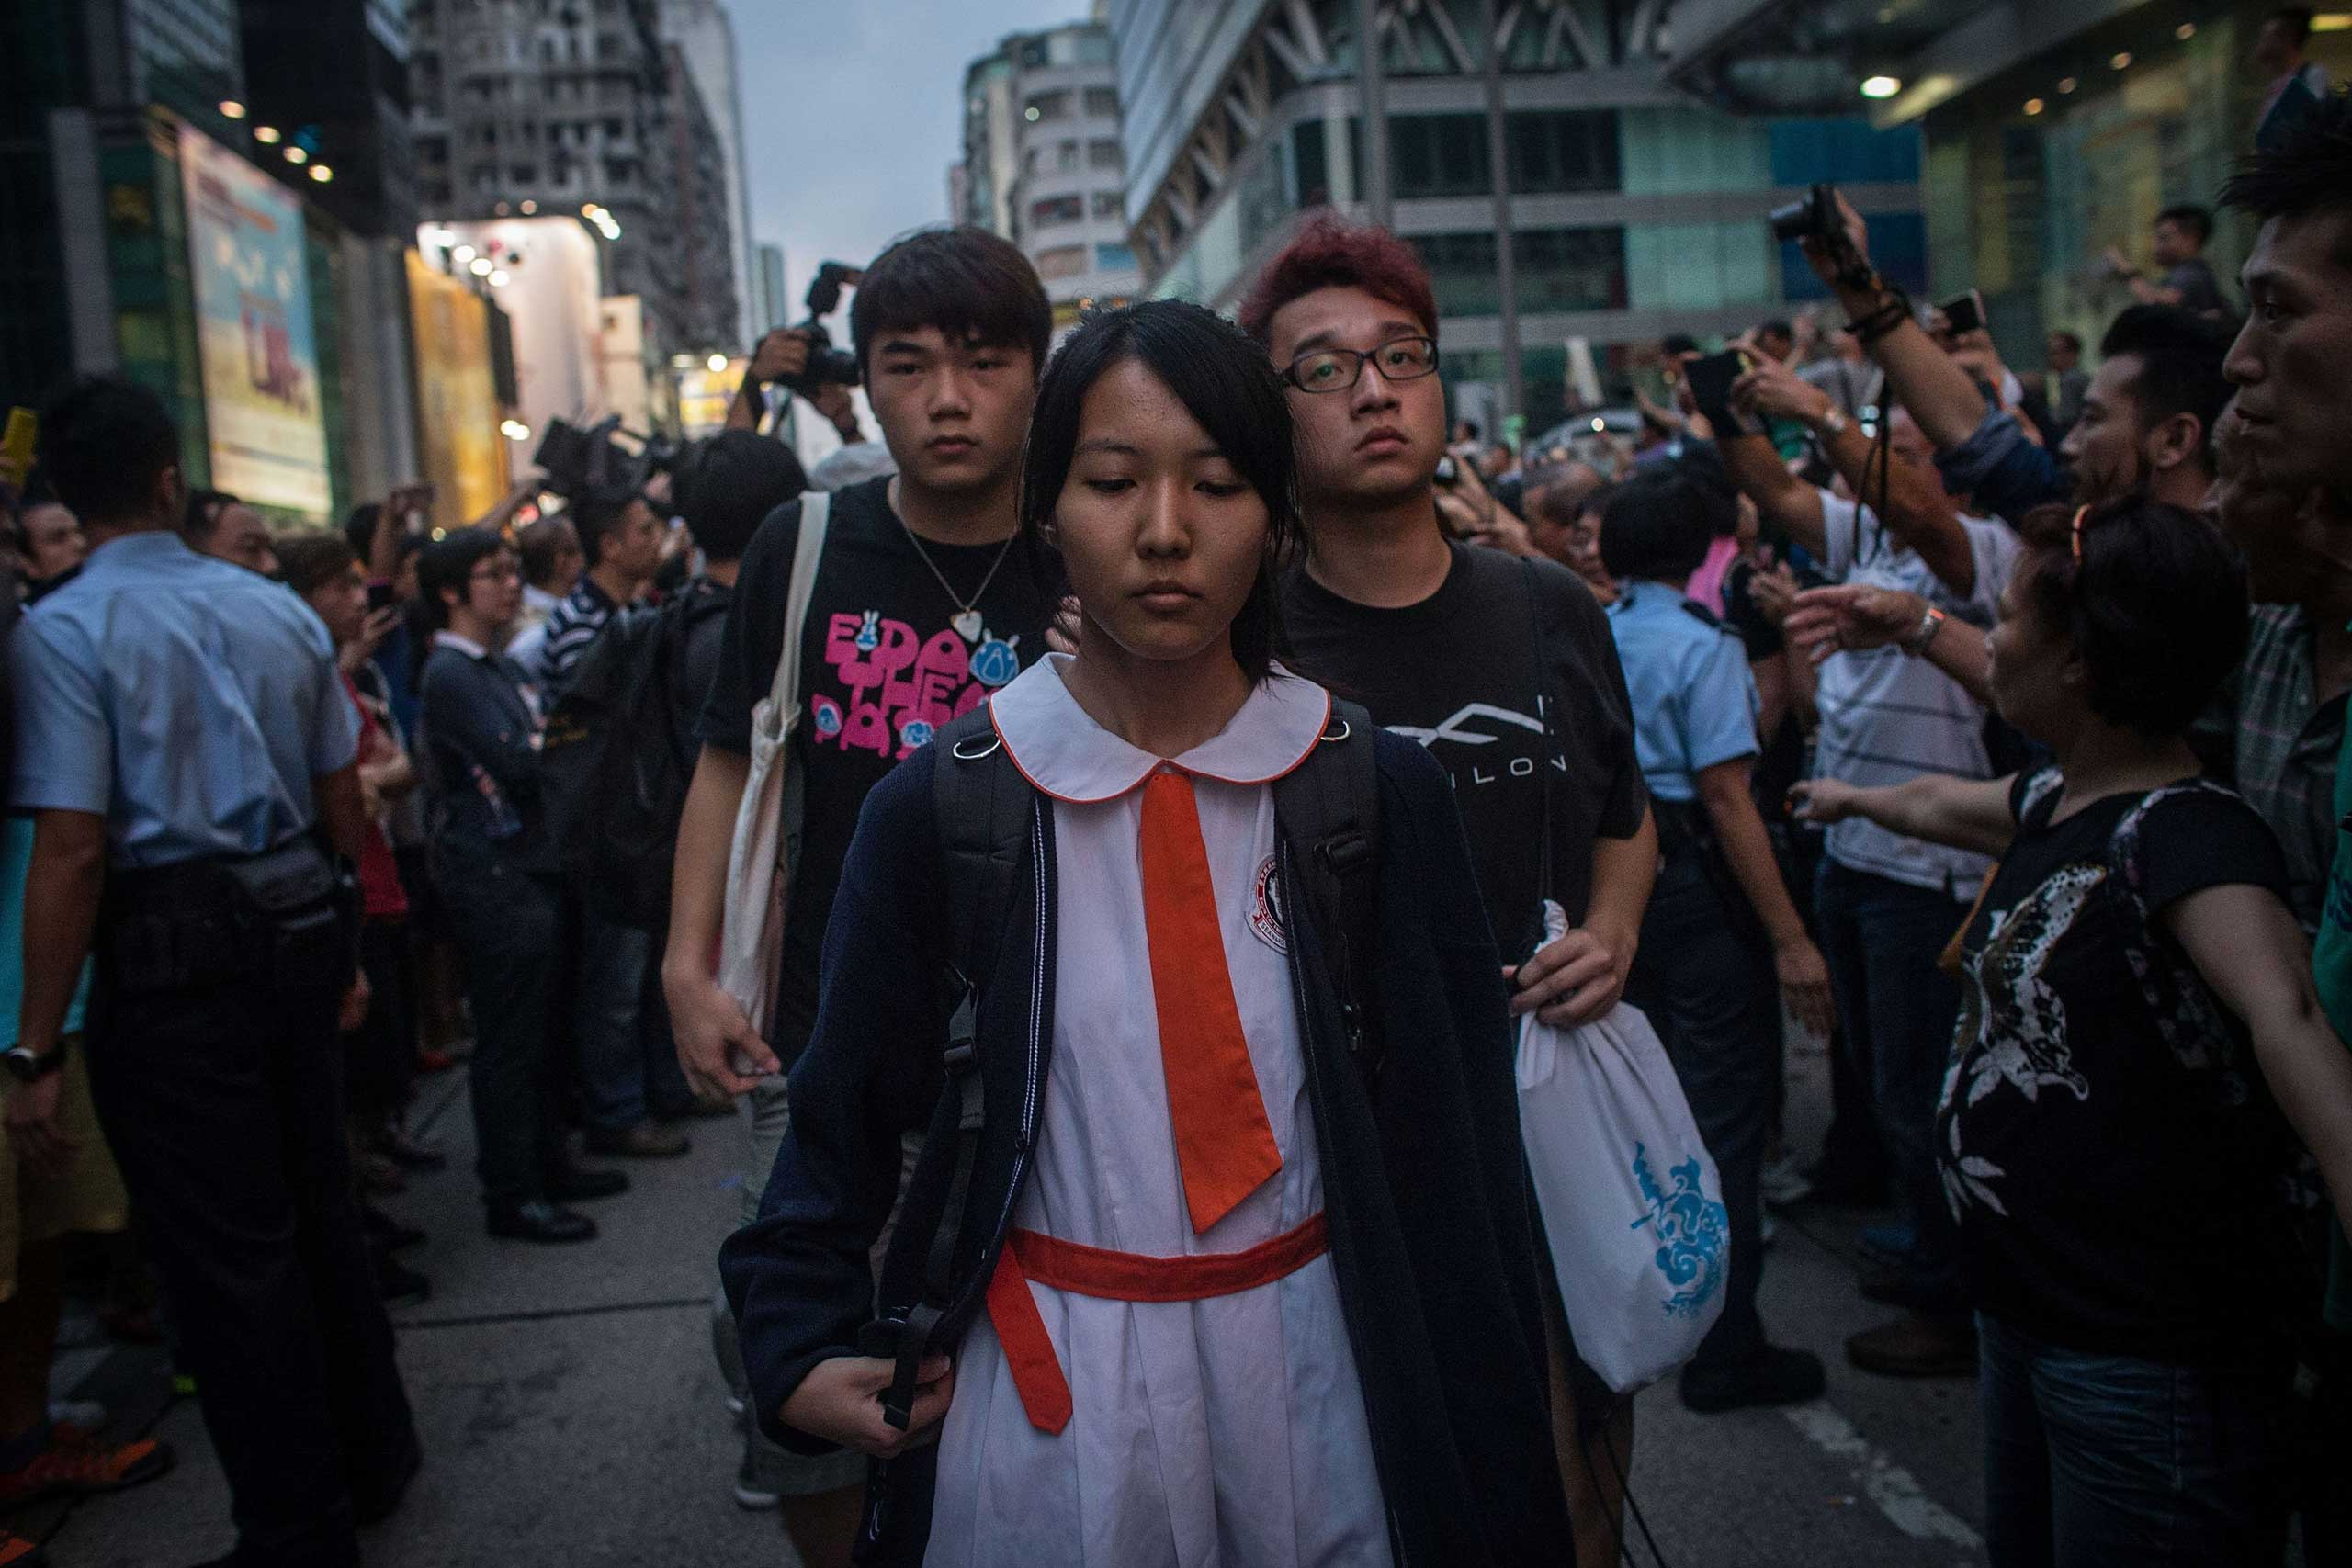 Students and pro-democracy activists leave the protest site as local police hold back local residents and pro-government supporters on Oct. 3, 2014 in Mong Kok, Hong Kong.